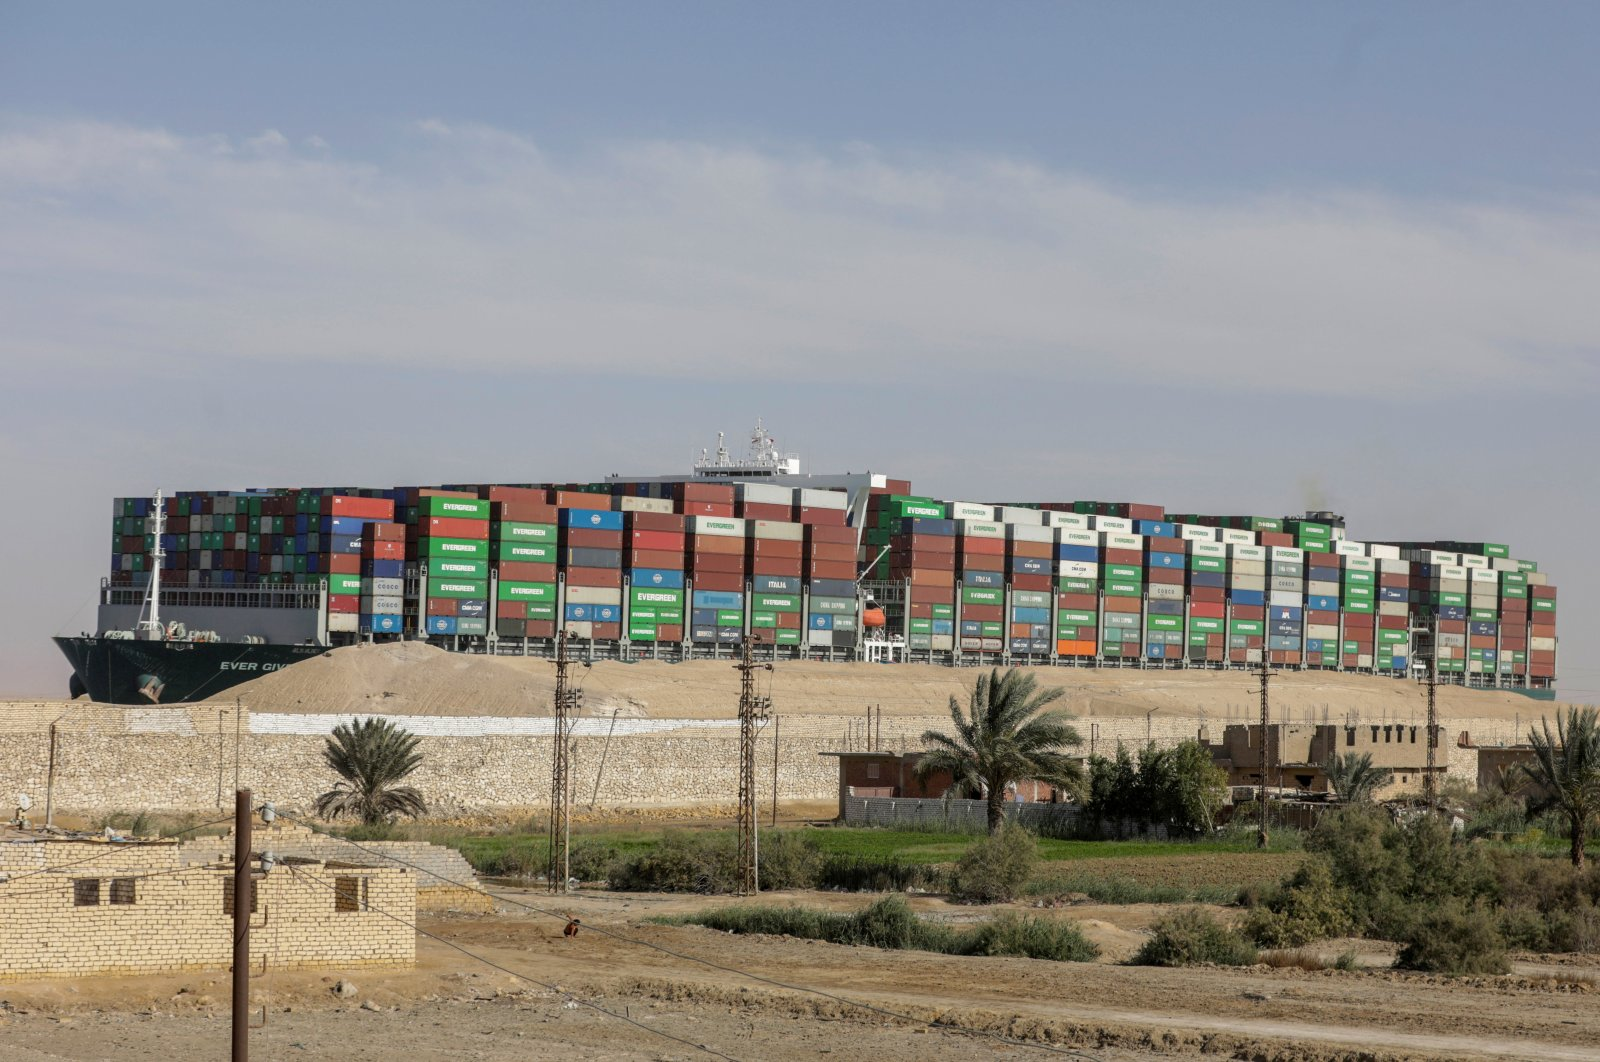 Ever Given, one of the world's largest container ships, is seen after it was fully floated in the Suez Canal, Egypt, March 29, 2021. (Reuters File Photo)